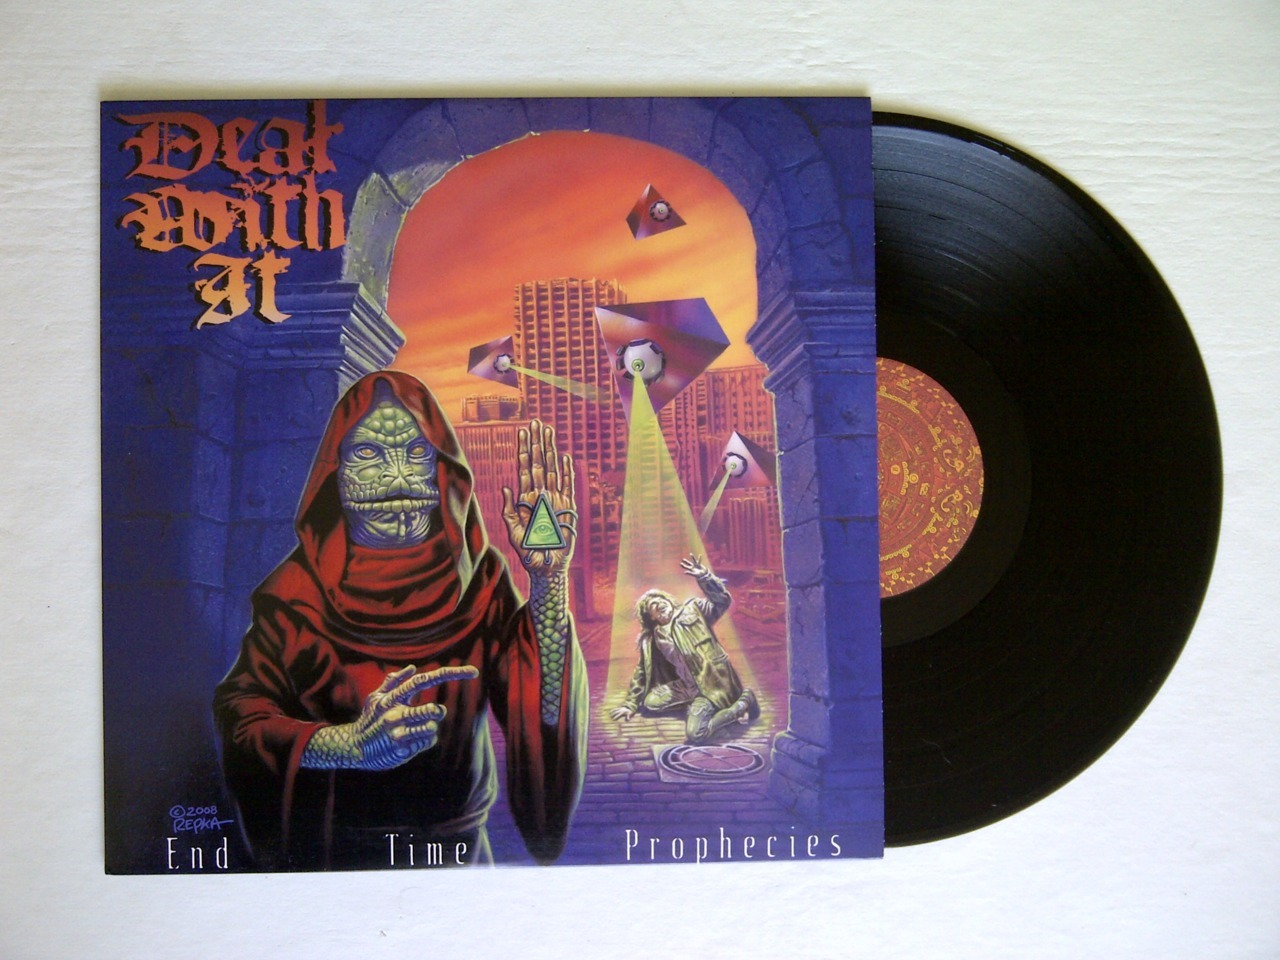 "DEAL WITH IT - End Time Prophecies 12""Dead And Gone Records 10€ botedge@gmail.com"